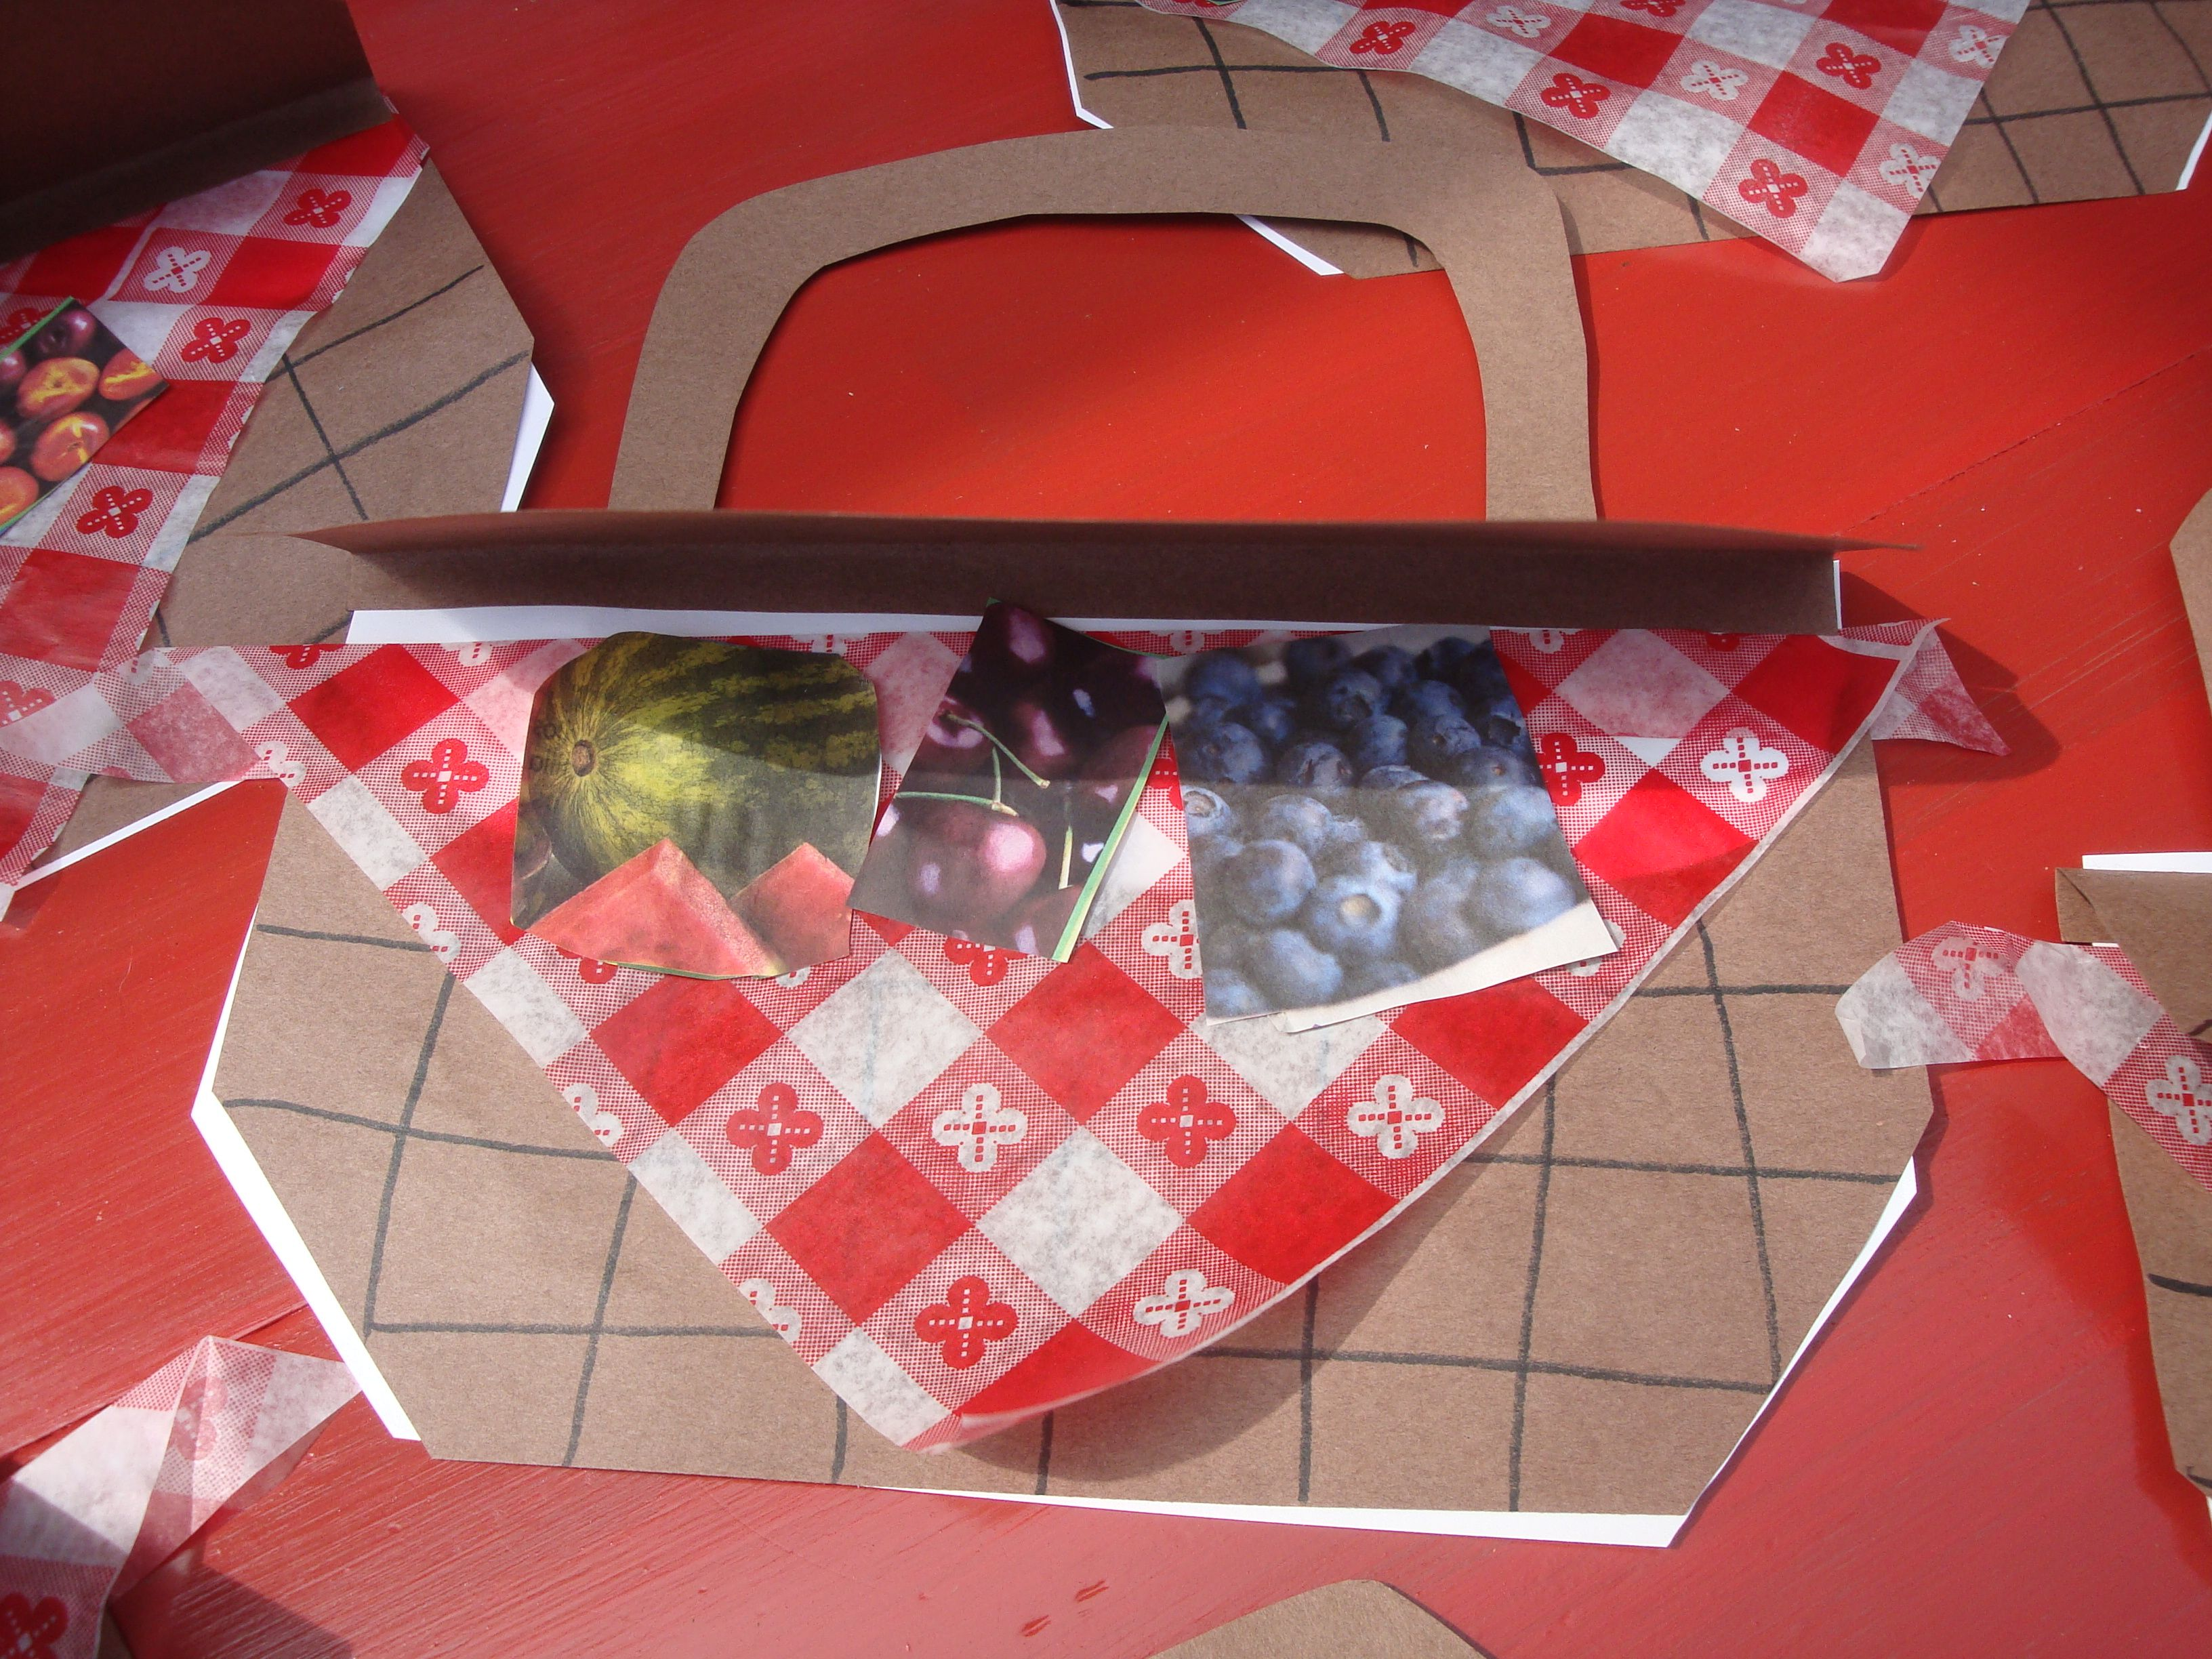 Picnic Basket Have Students Cut Pictures From Magazines Of Food They